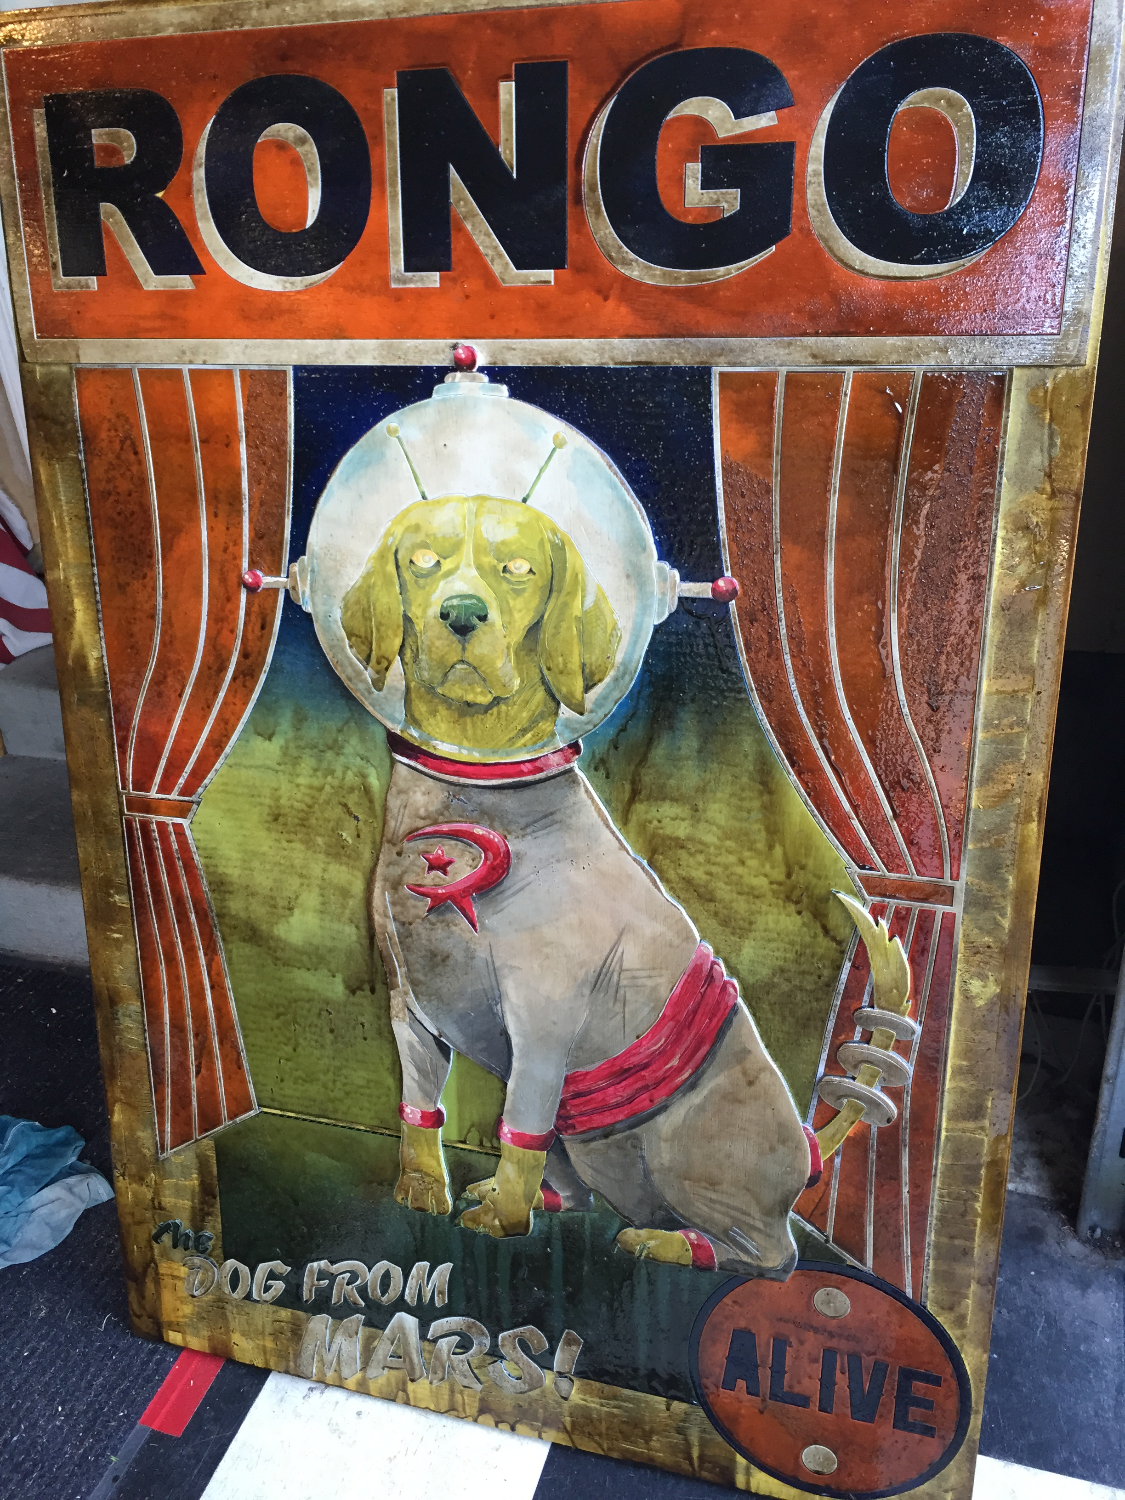 RONGO - Dog from Mars